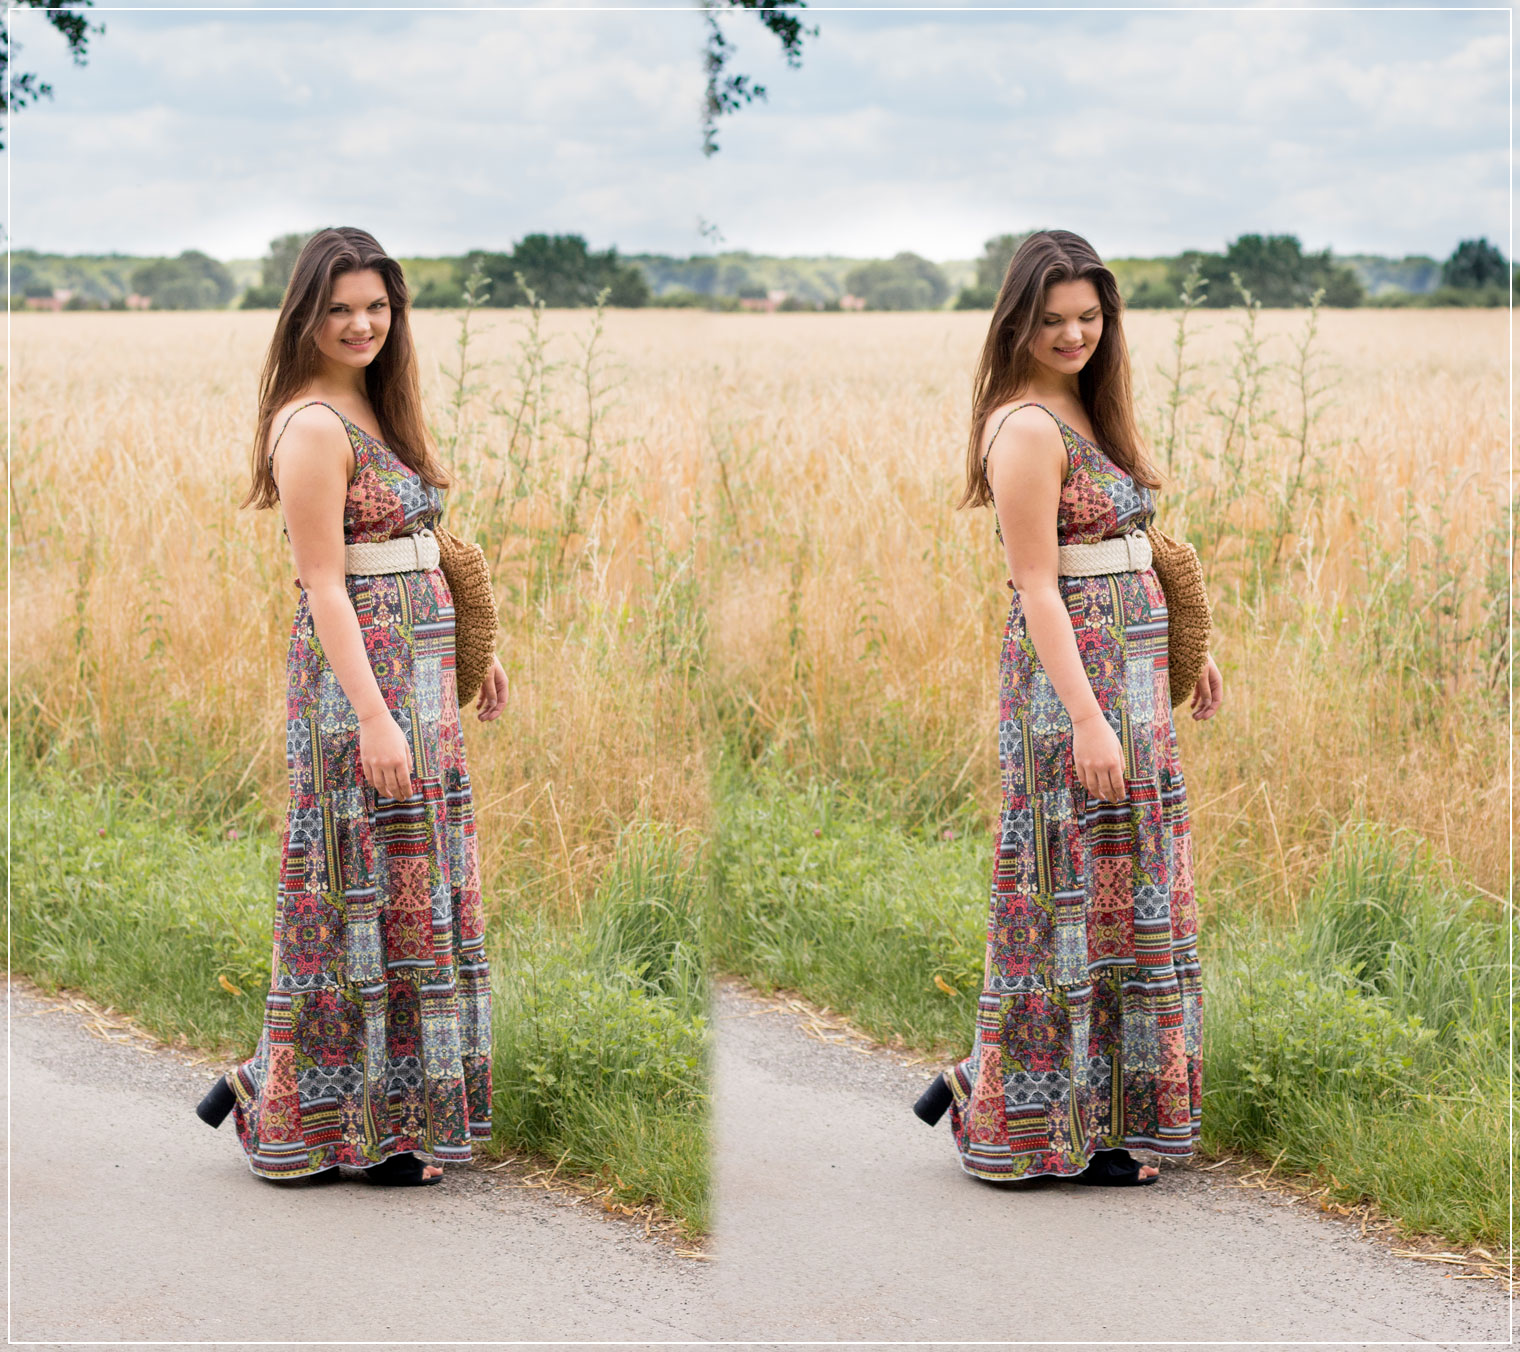 Boho-Style, Sommerlook, Maxikleid, Sommeroutfit, Boho-Look, Styleguide, Outfitinspiration, Modebloggerin, Fashionbloggerin, Modeblog, Ruhrgebiet